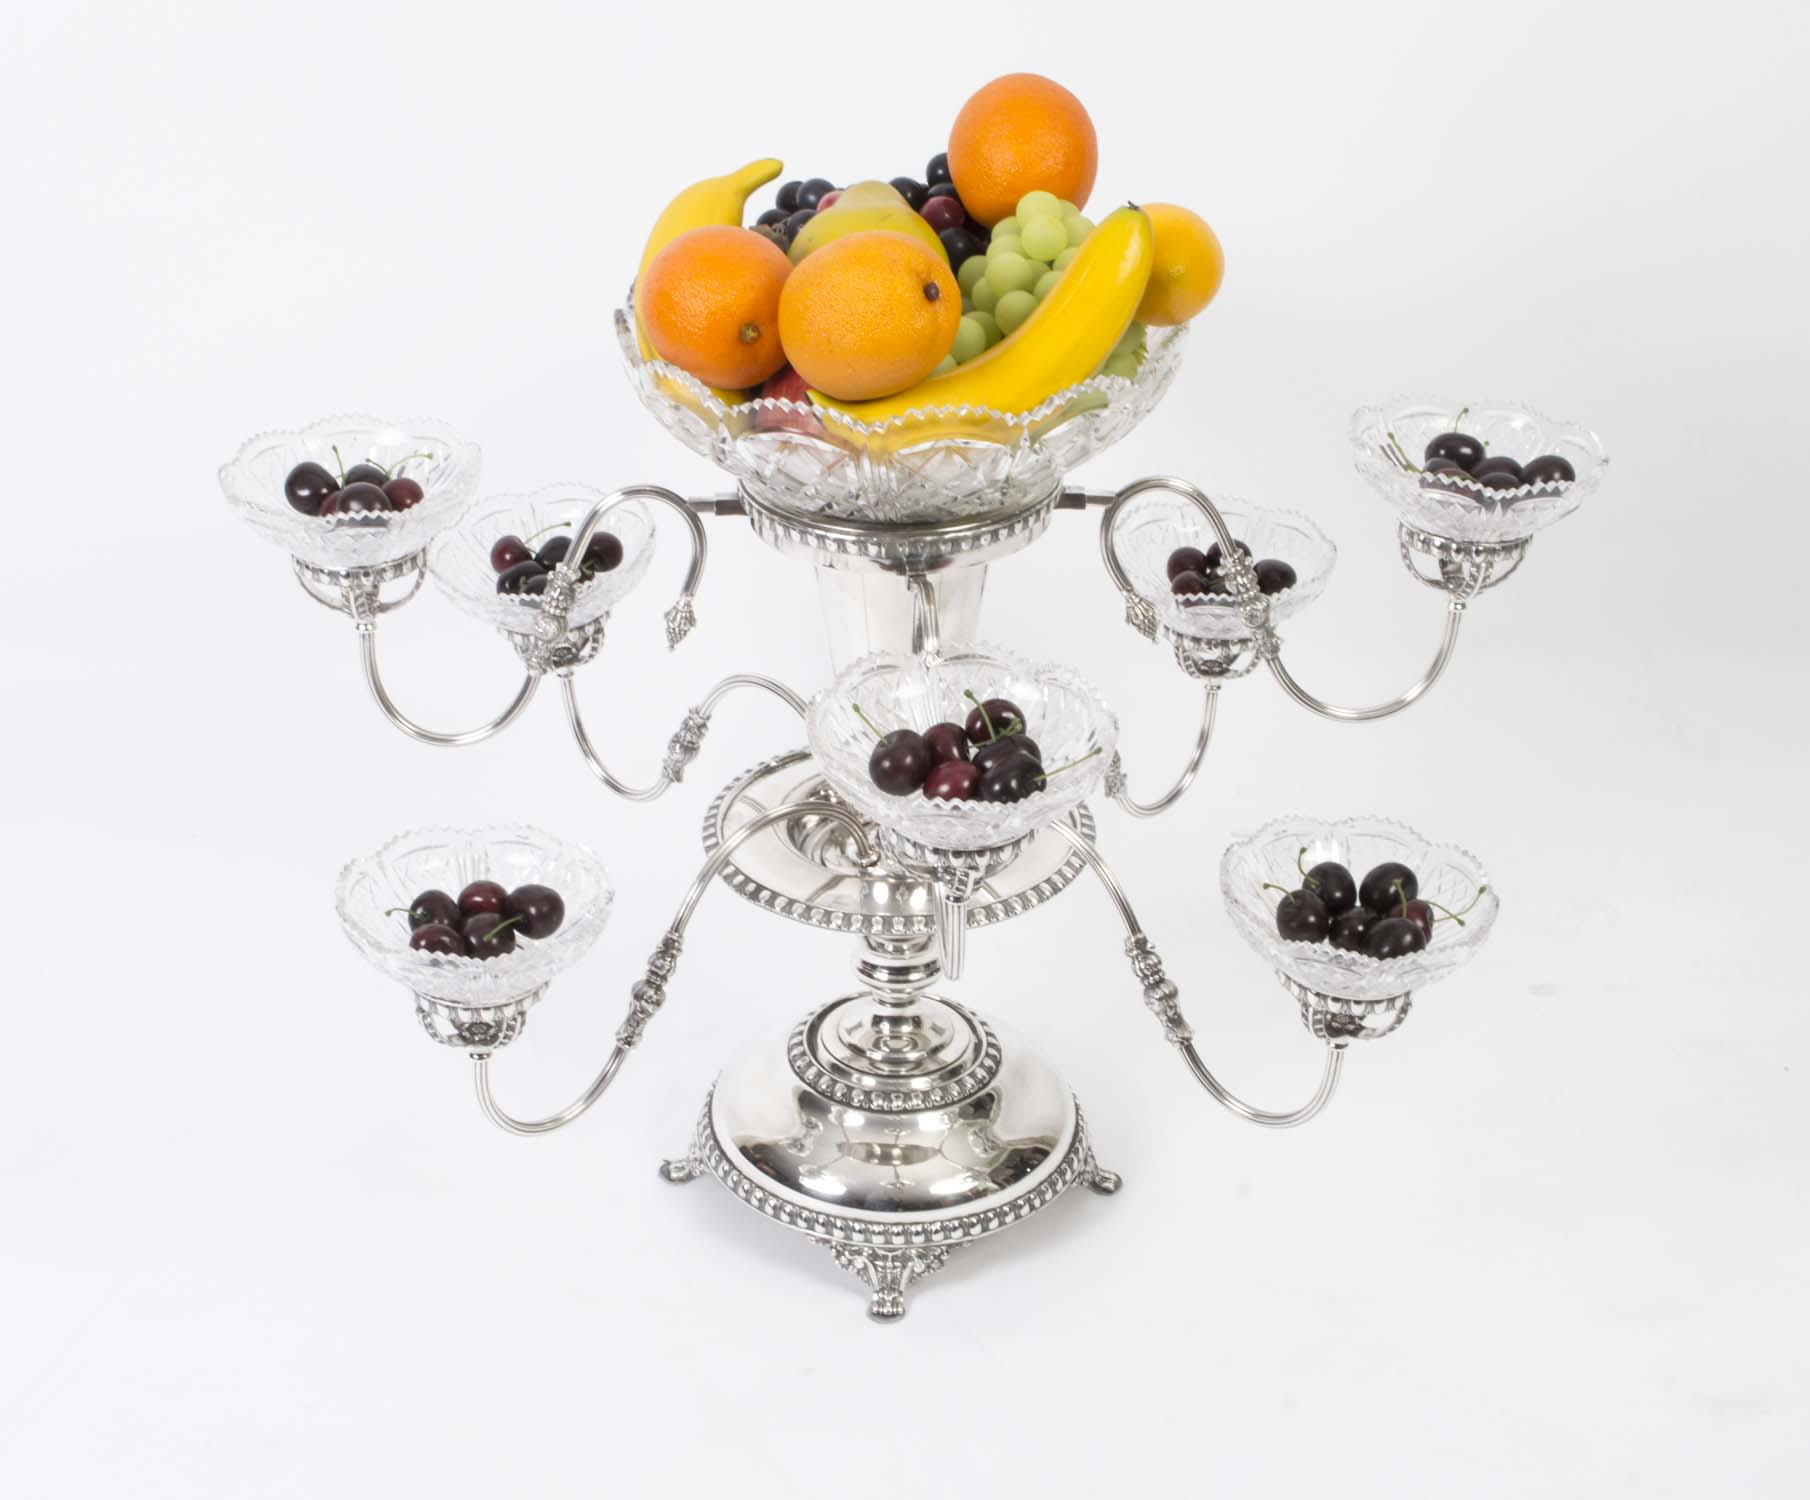 Remarkable Epergne | Fresh Cranberry Epergne